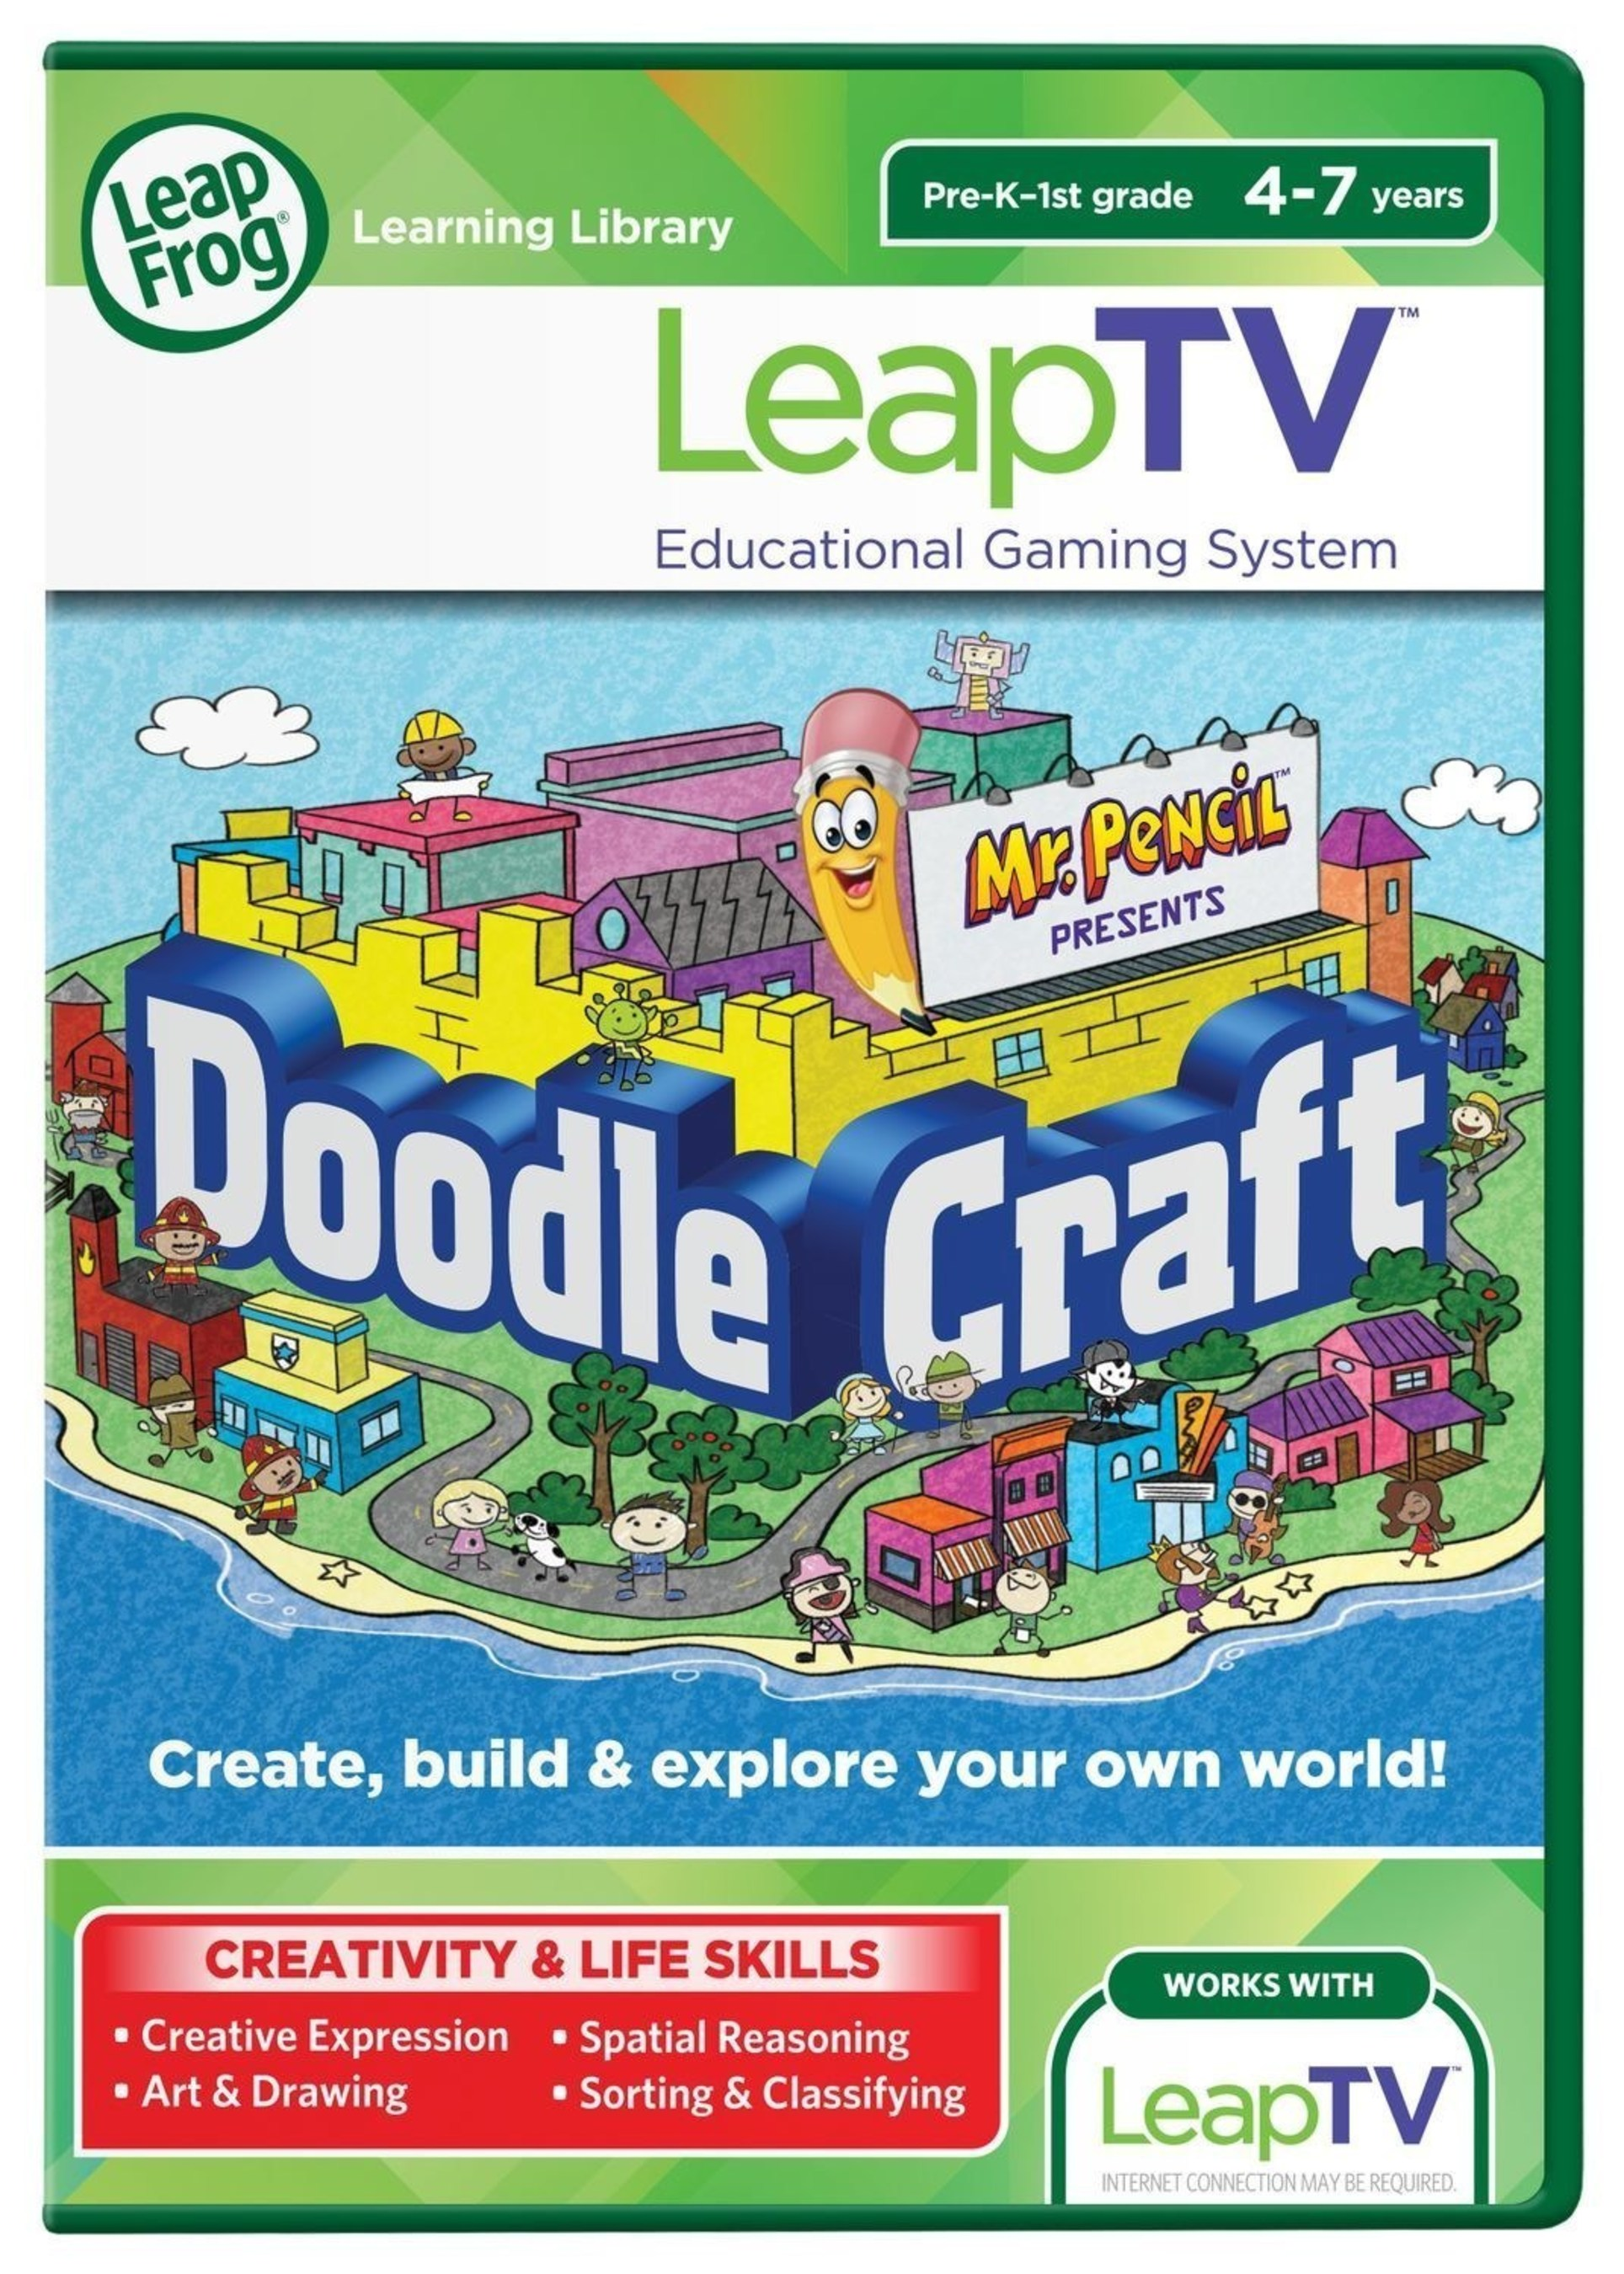 LeapFrog Announces Amazing LeapTV Game Lineup and Hot New $99 Price for Its Award-Winning LeapTV Educational Gaming System